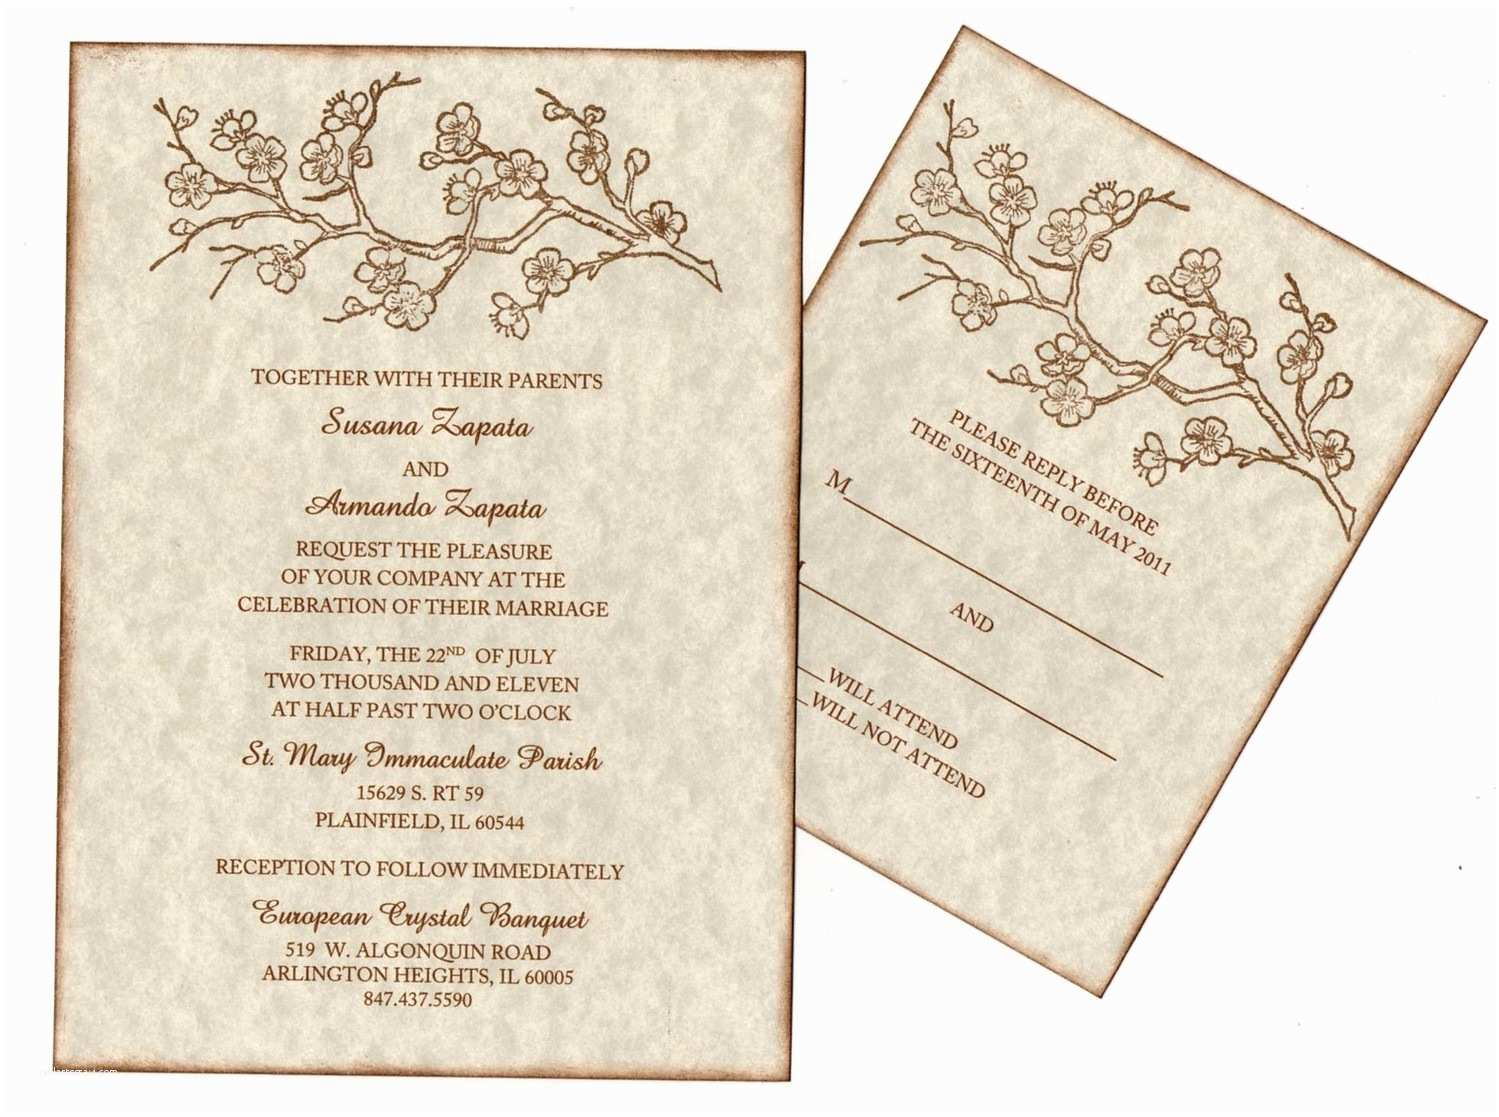 South asian Wedding Invitations south Indian Wedding Invitation Cards Designs Yourweek